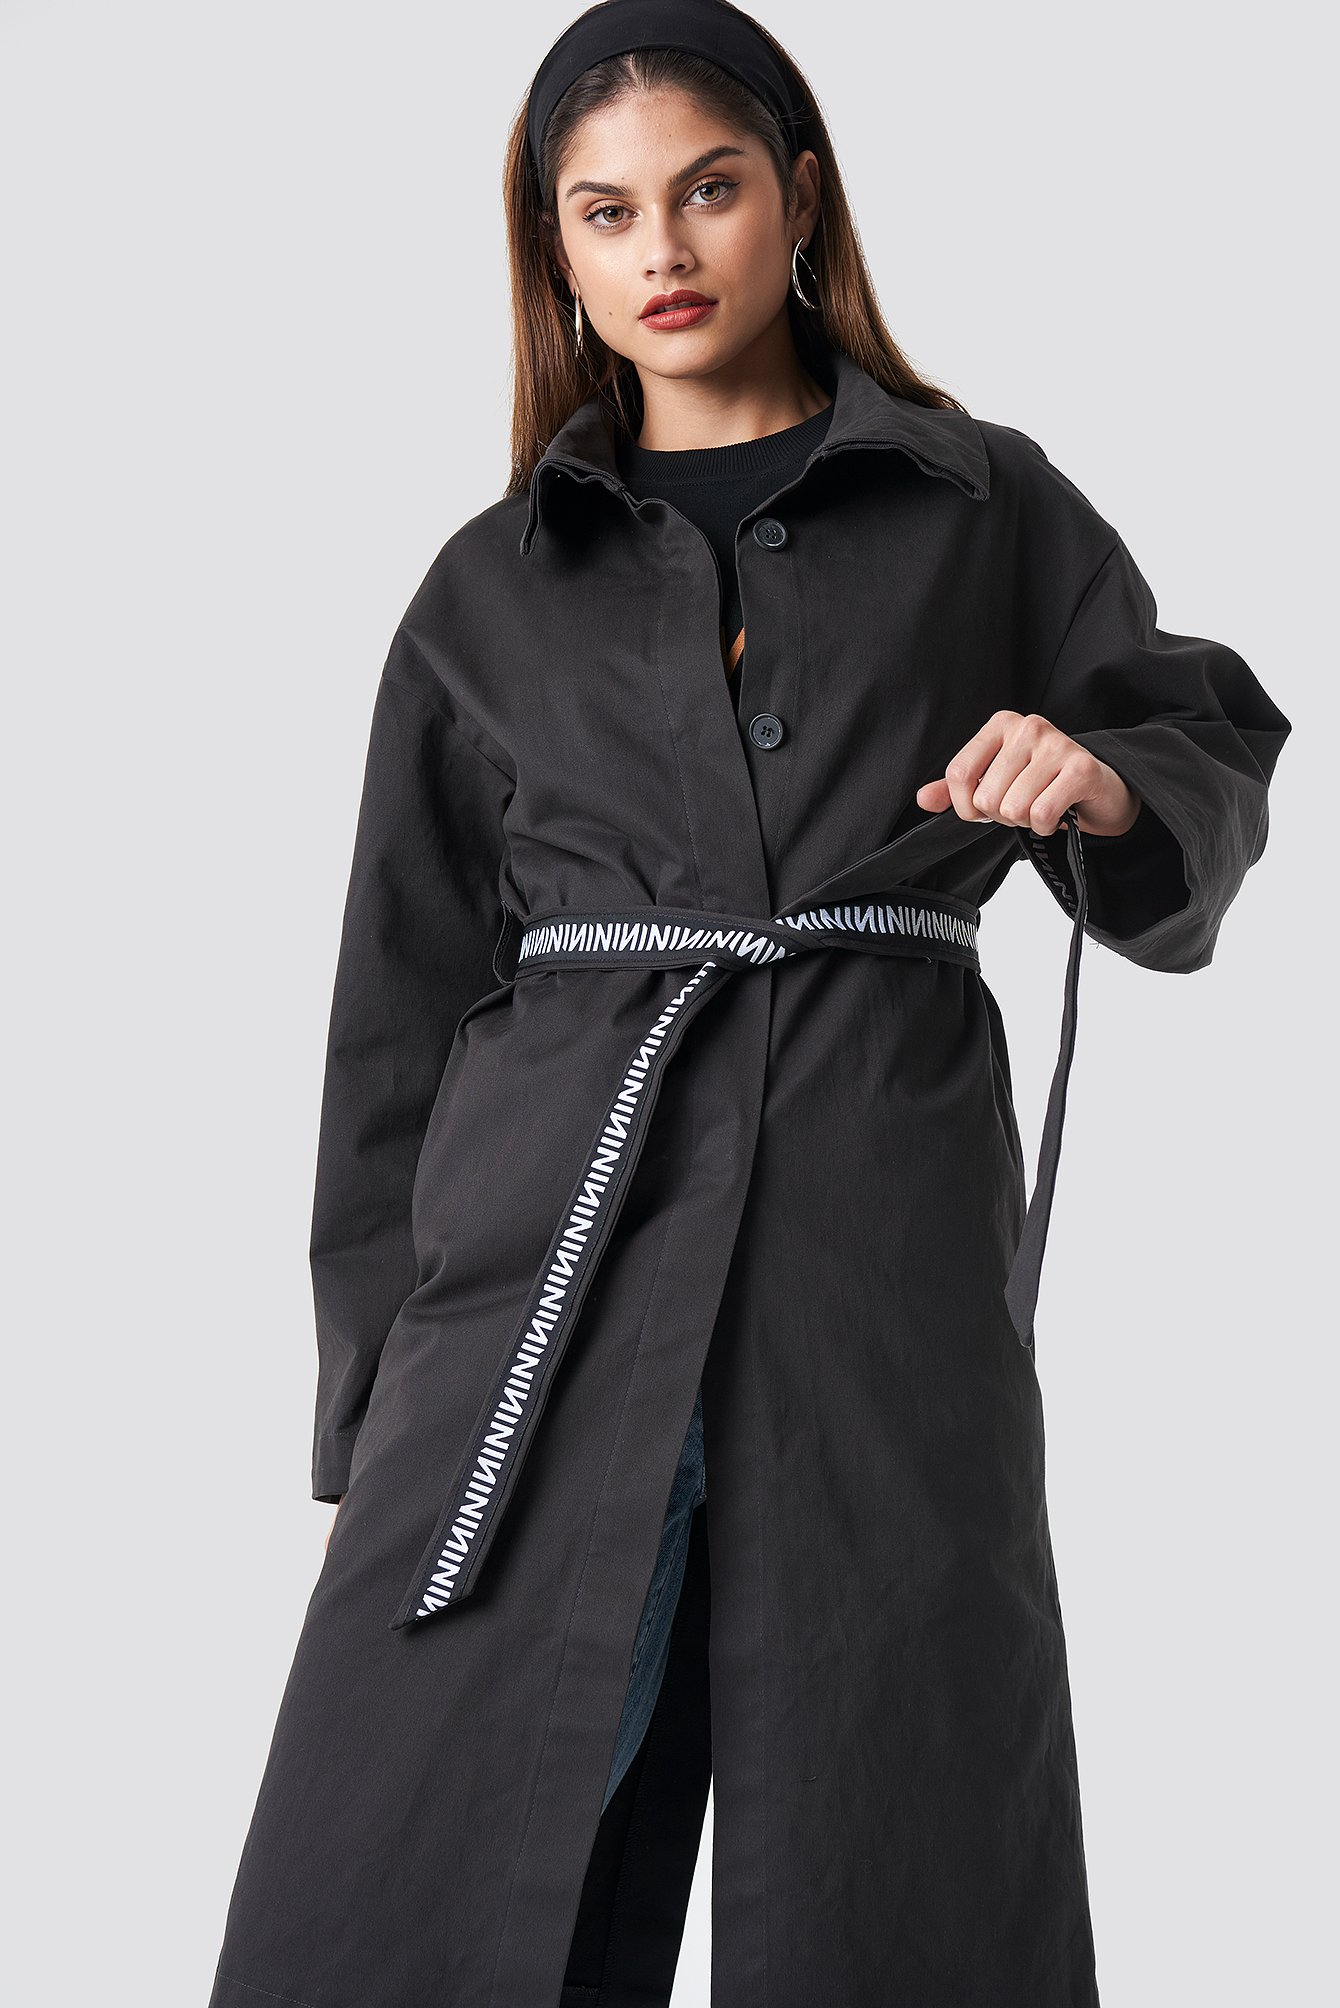 N Branded Sleeve Trench Coat NA-KD.COM